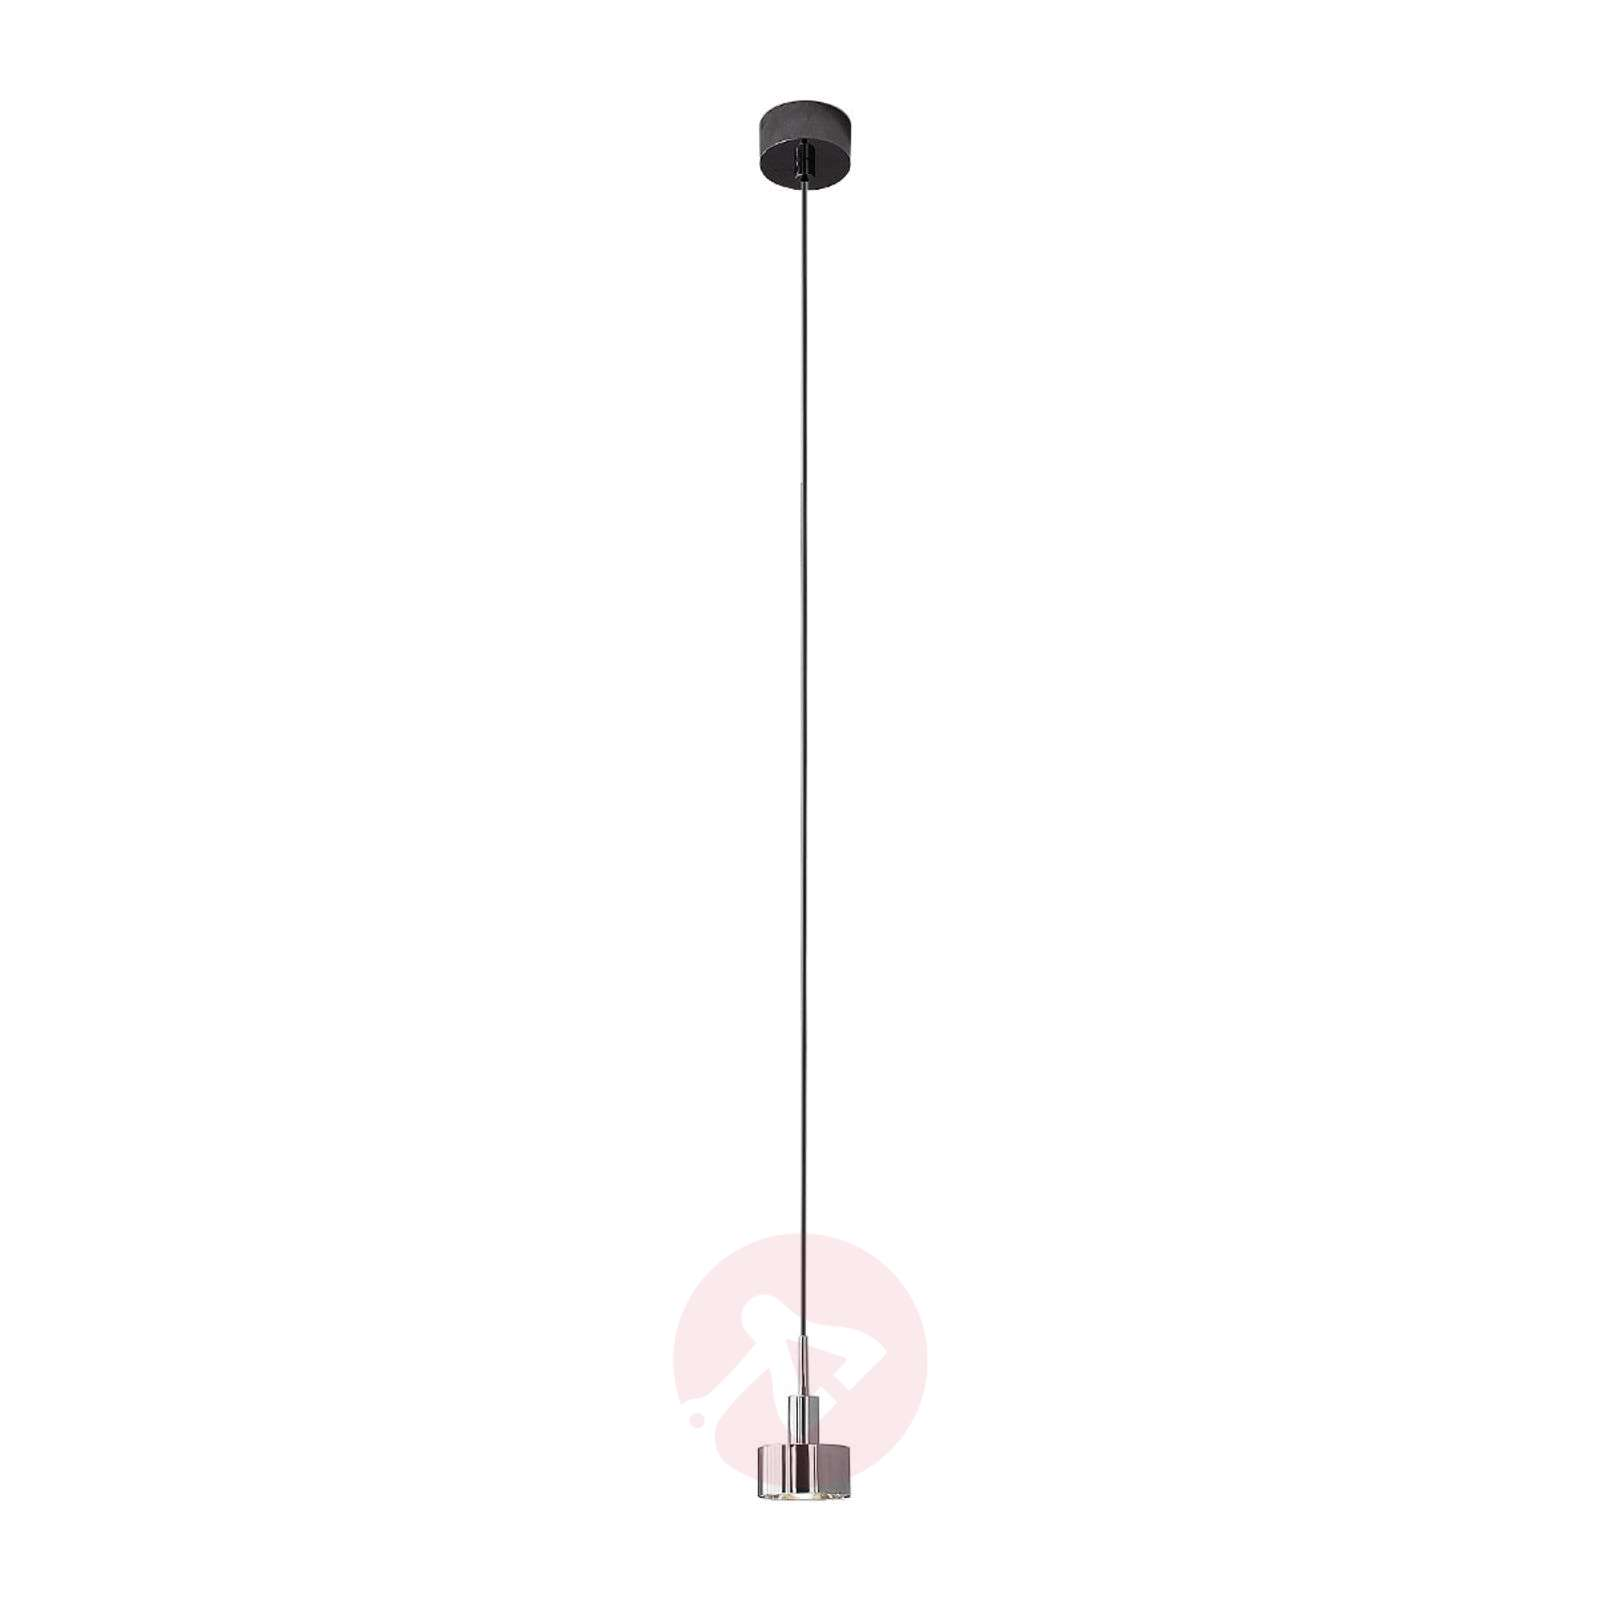 Suspension chromée AX20 à 1 lampe-1088038-01